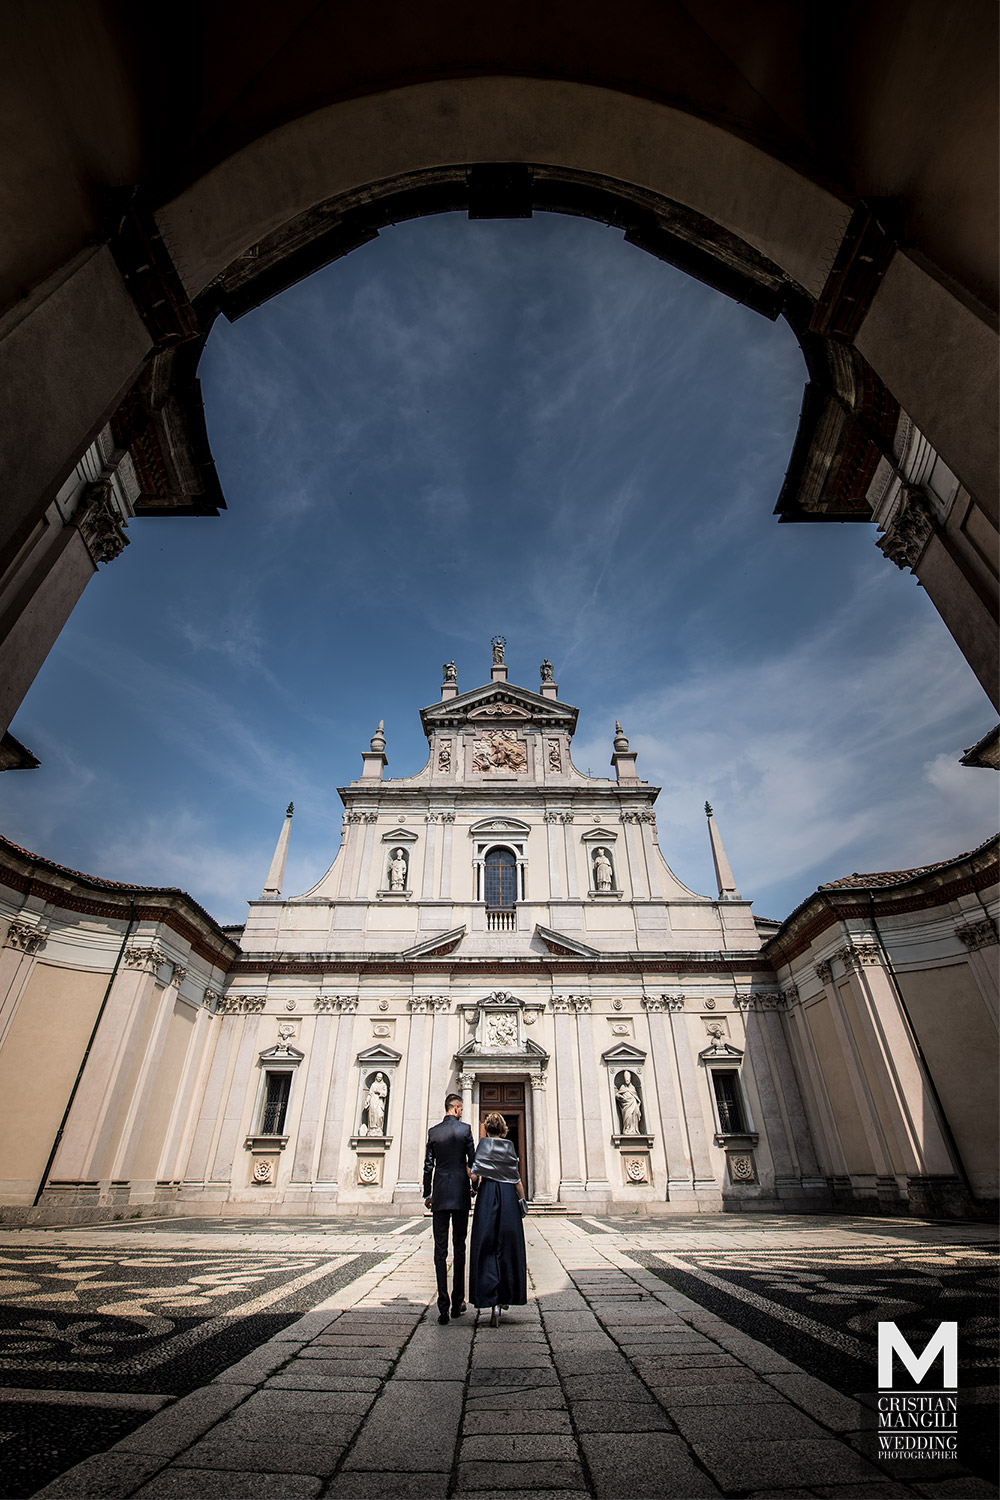 artistic-wedding-photo-church-italy